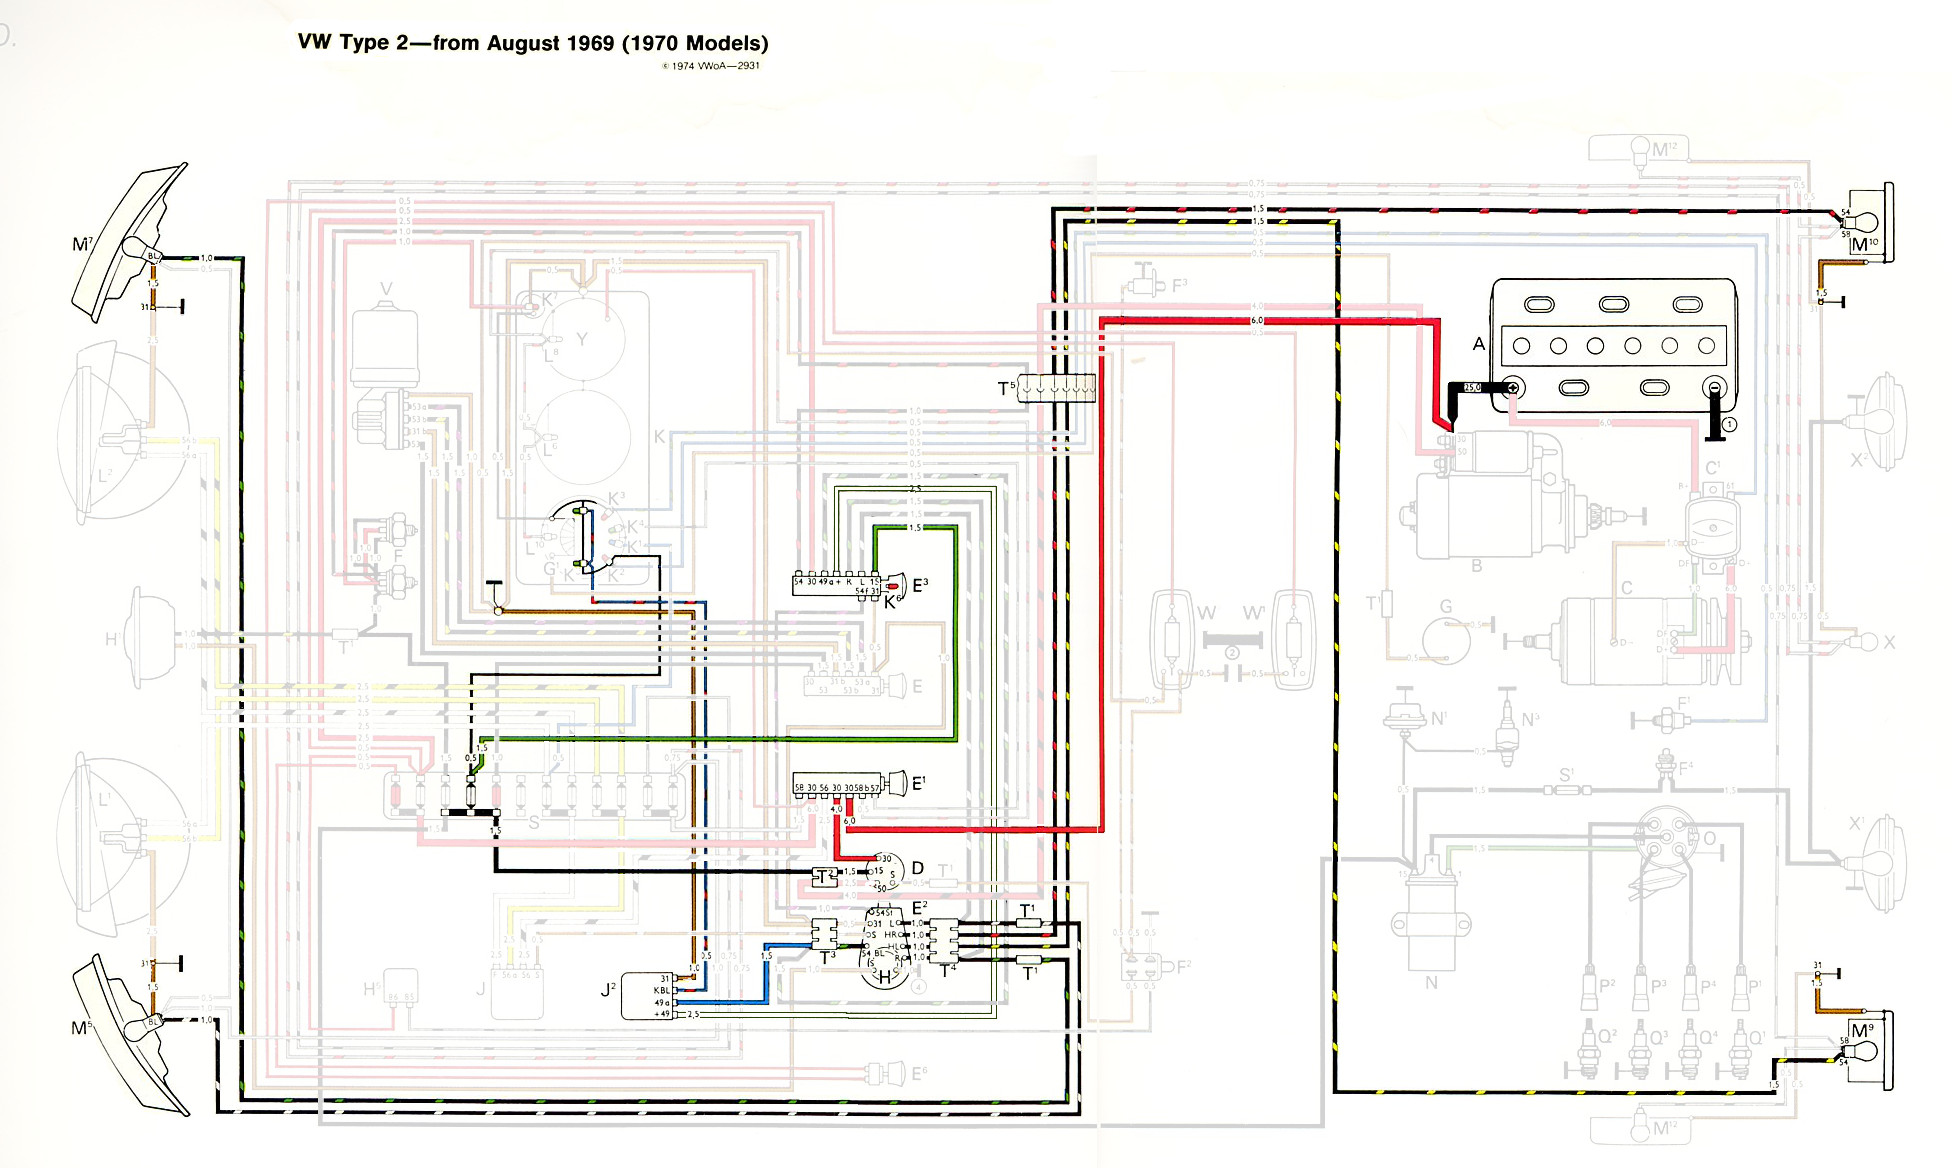 1970bus_signals thesamba com type 2 wiring diagrams 1970 vw beetle wiring schematic at crackthecode.co